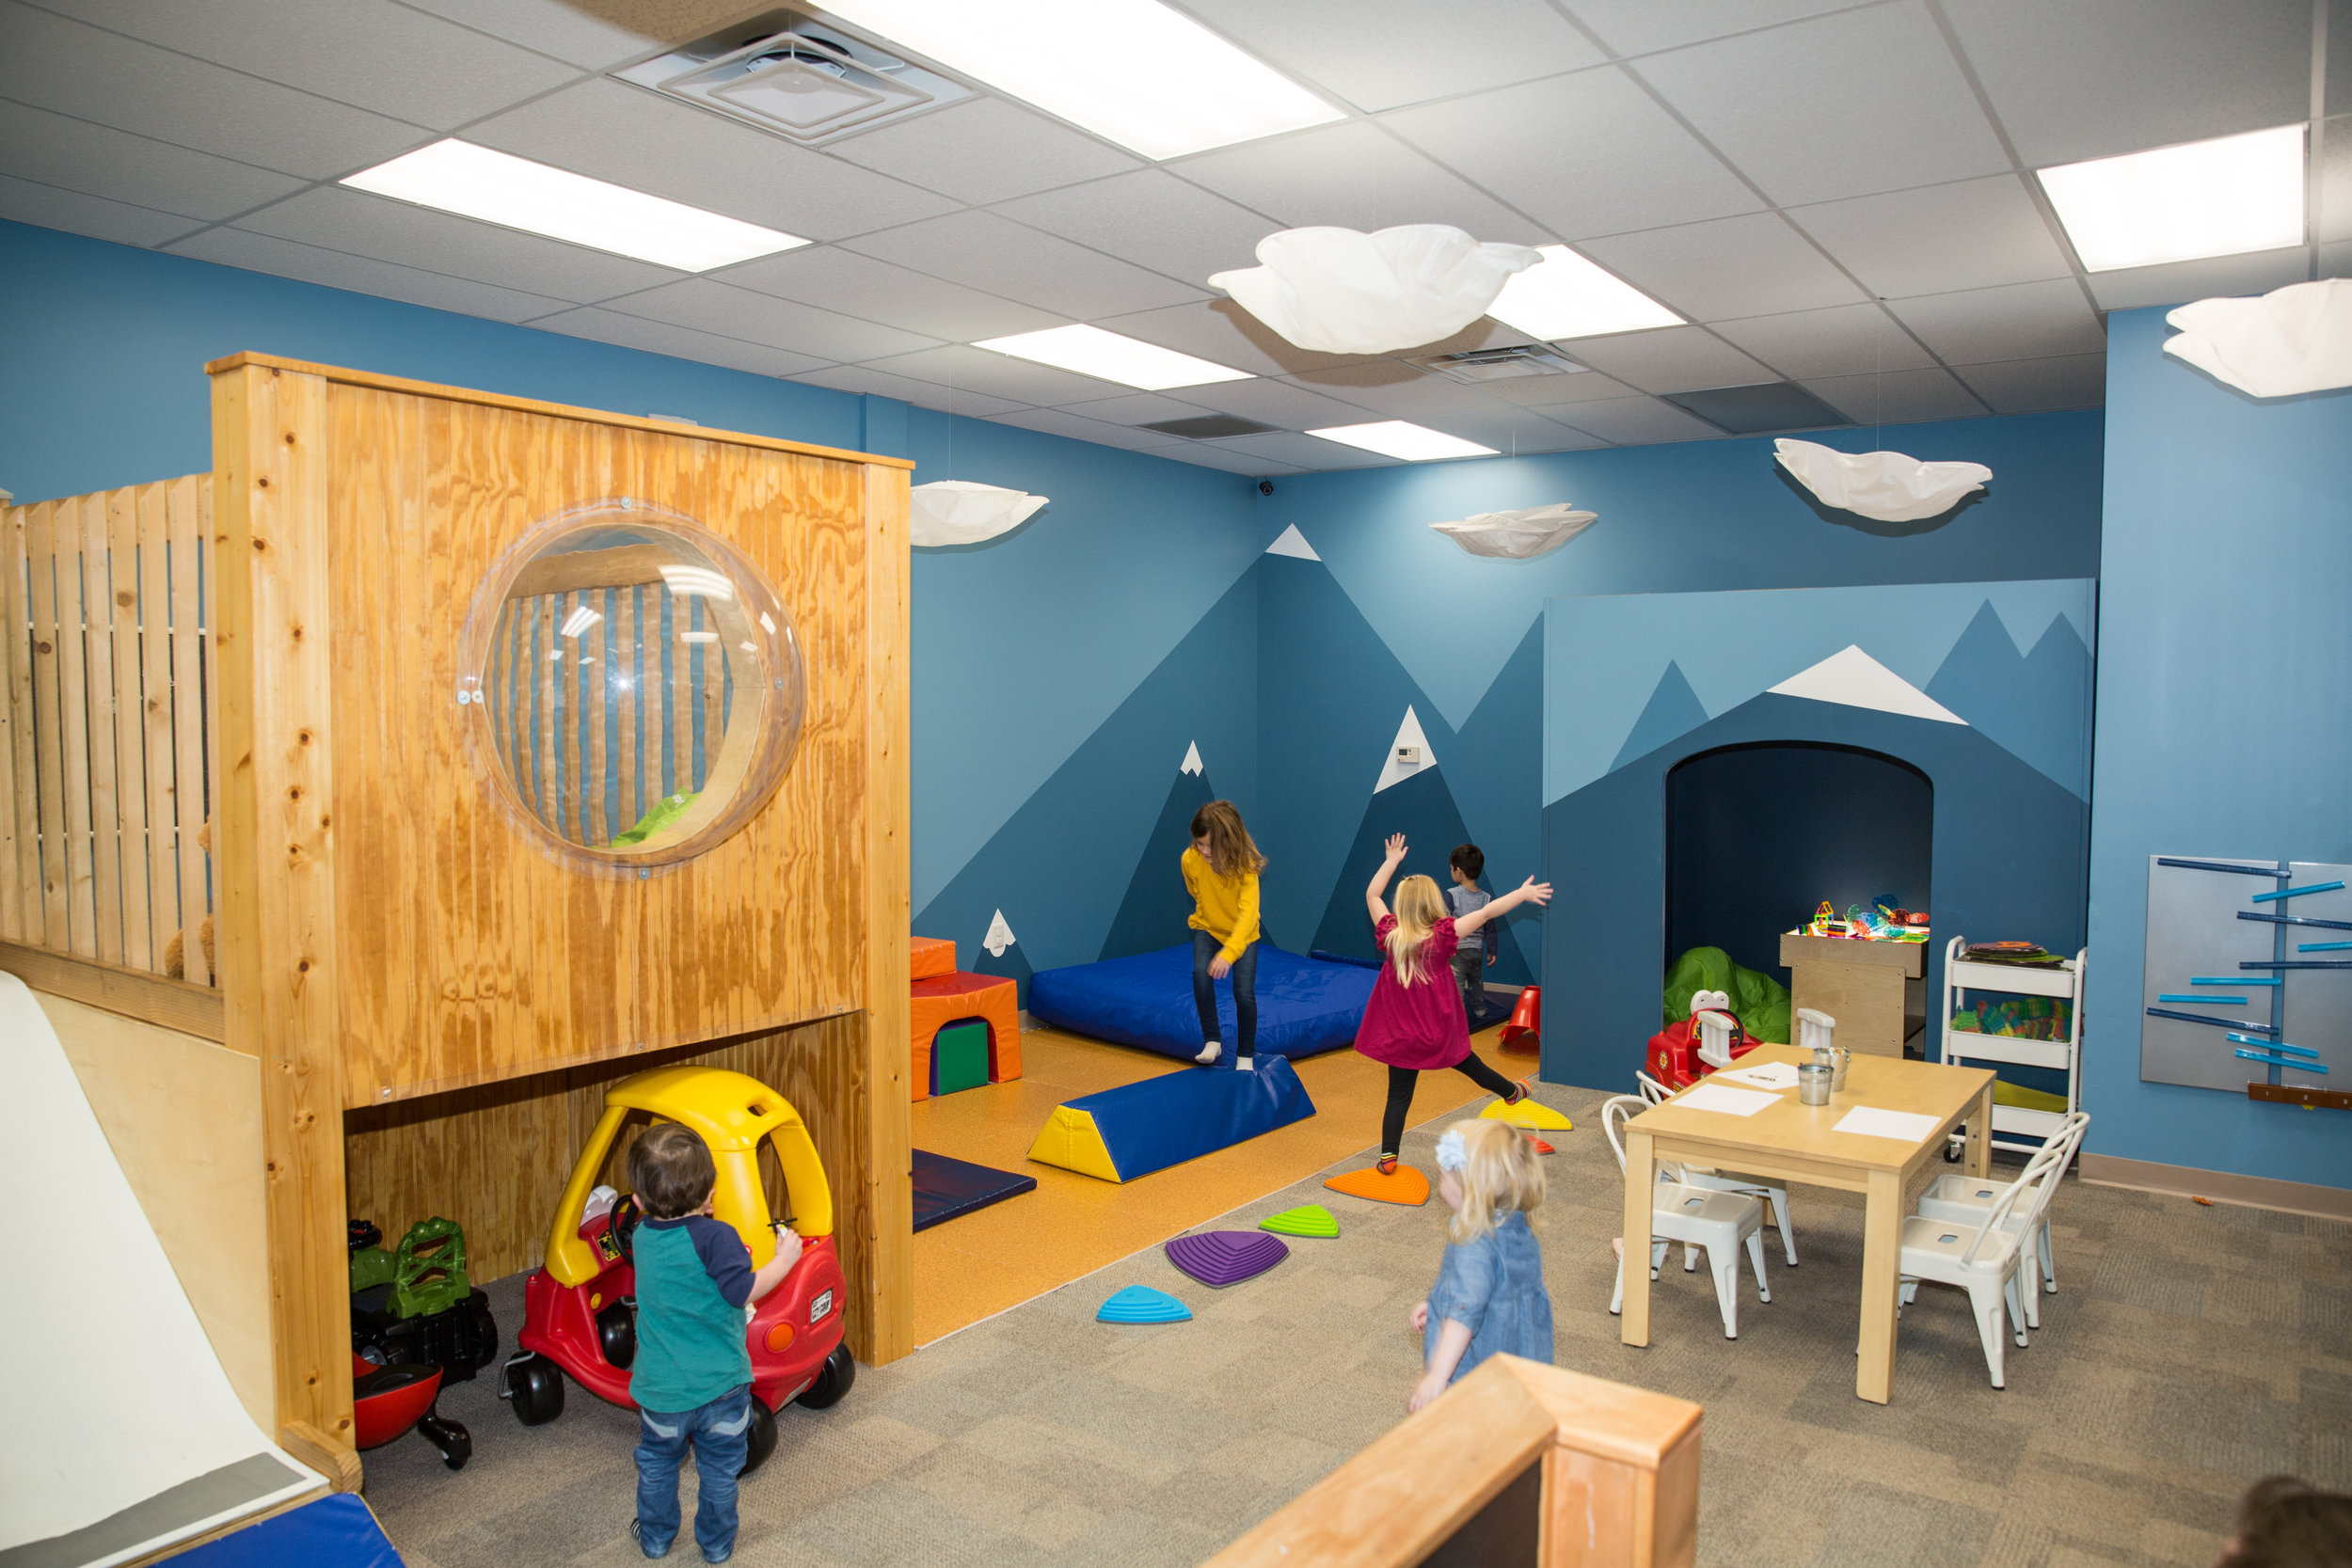 Large play area - A whimsical place for children to use their imagination, make new friends, and burn off extra energy .